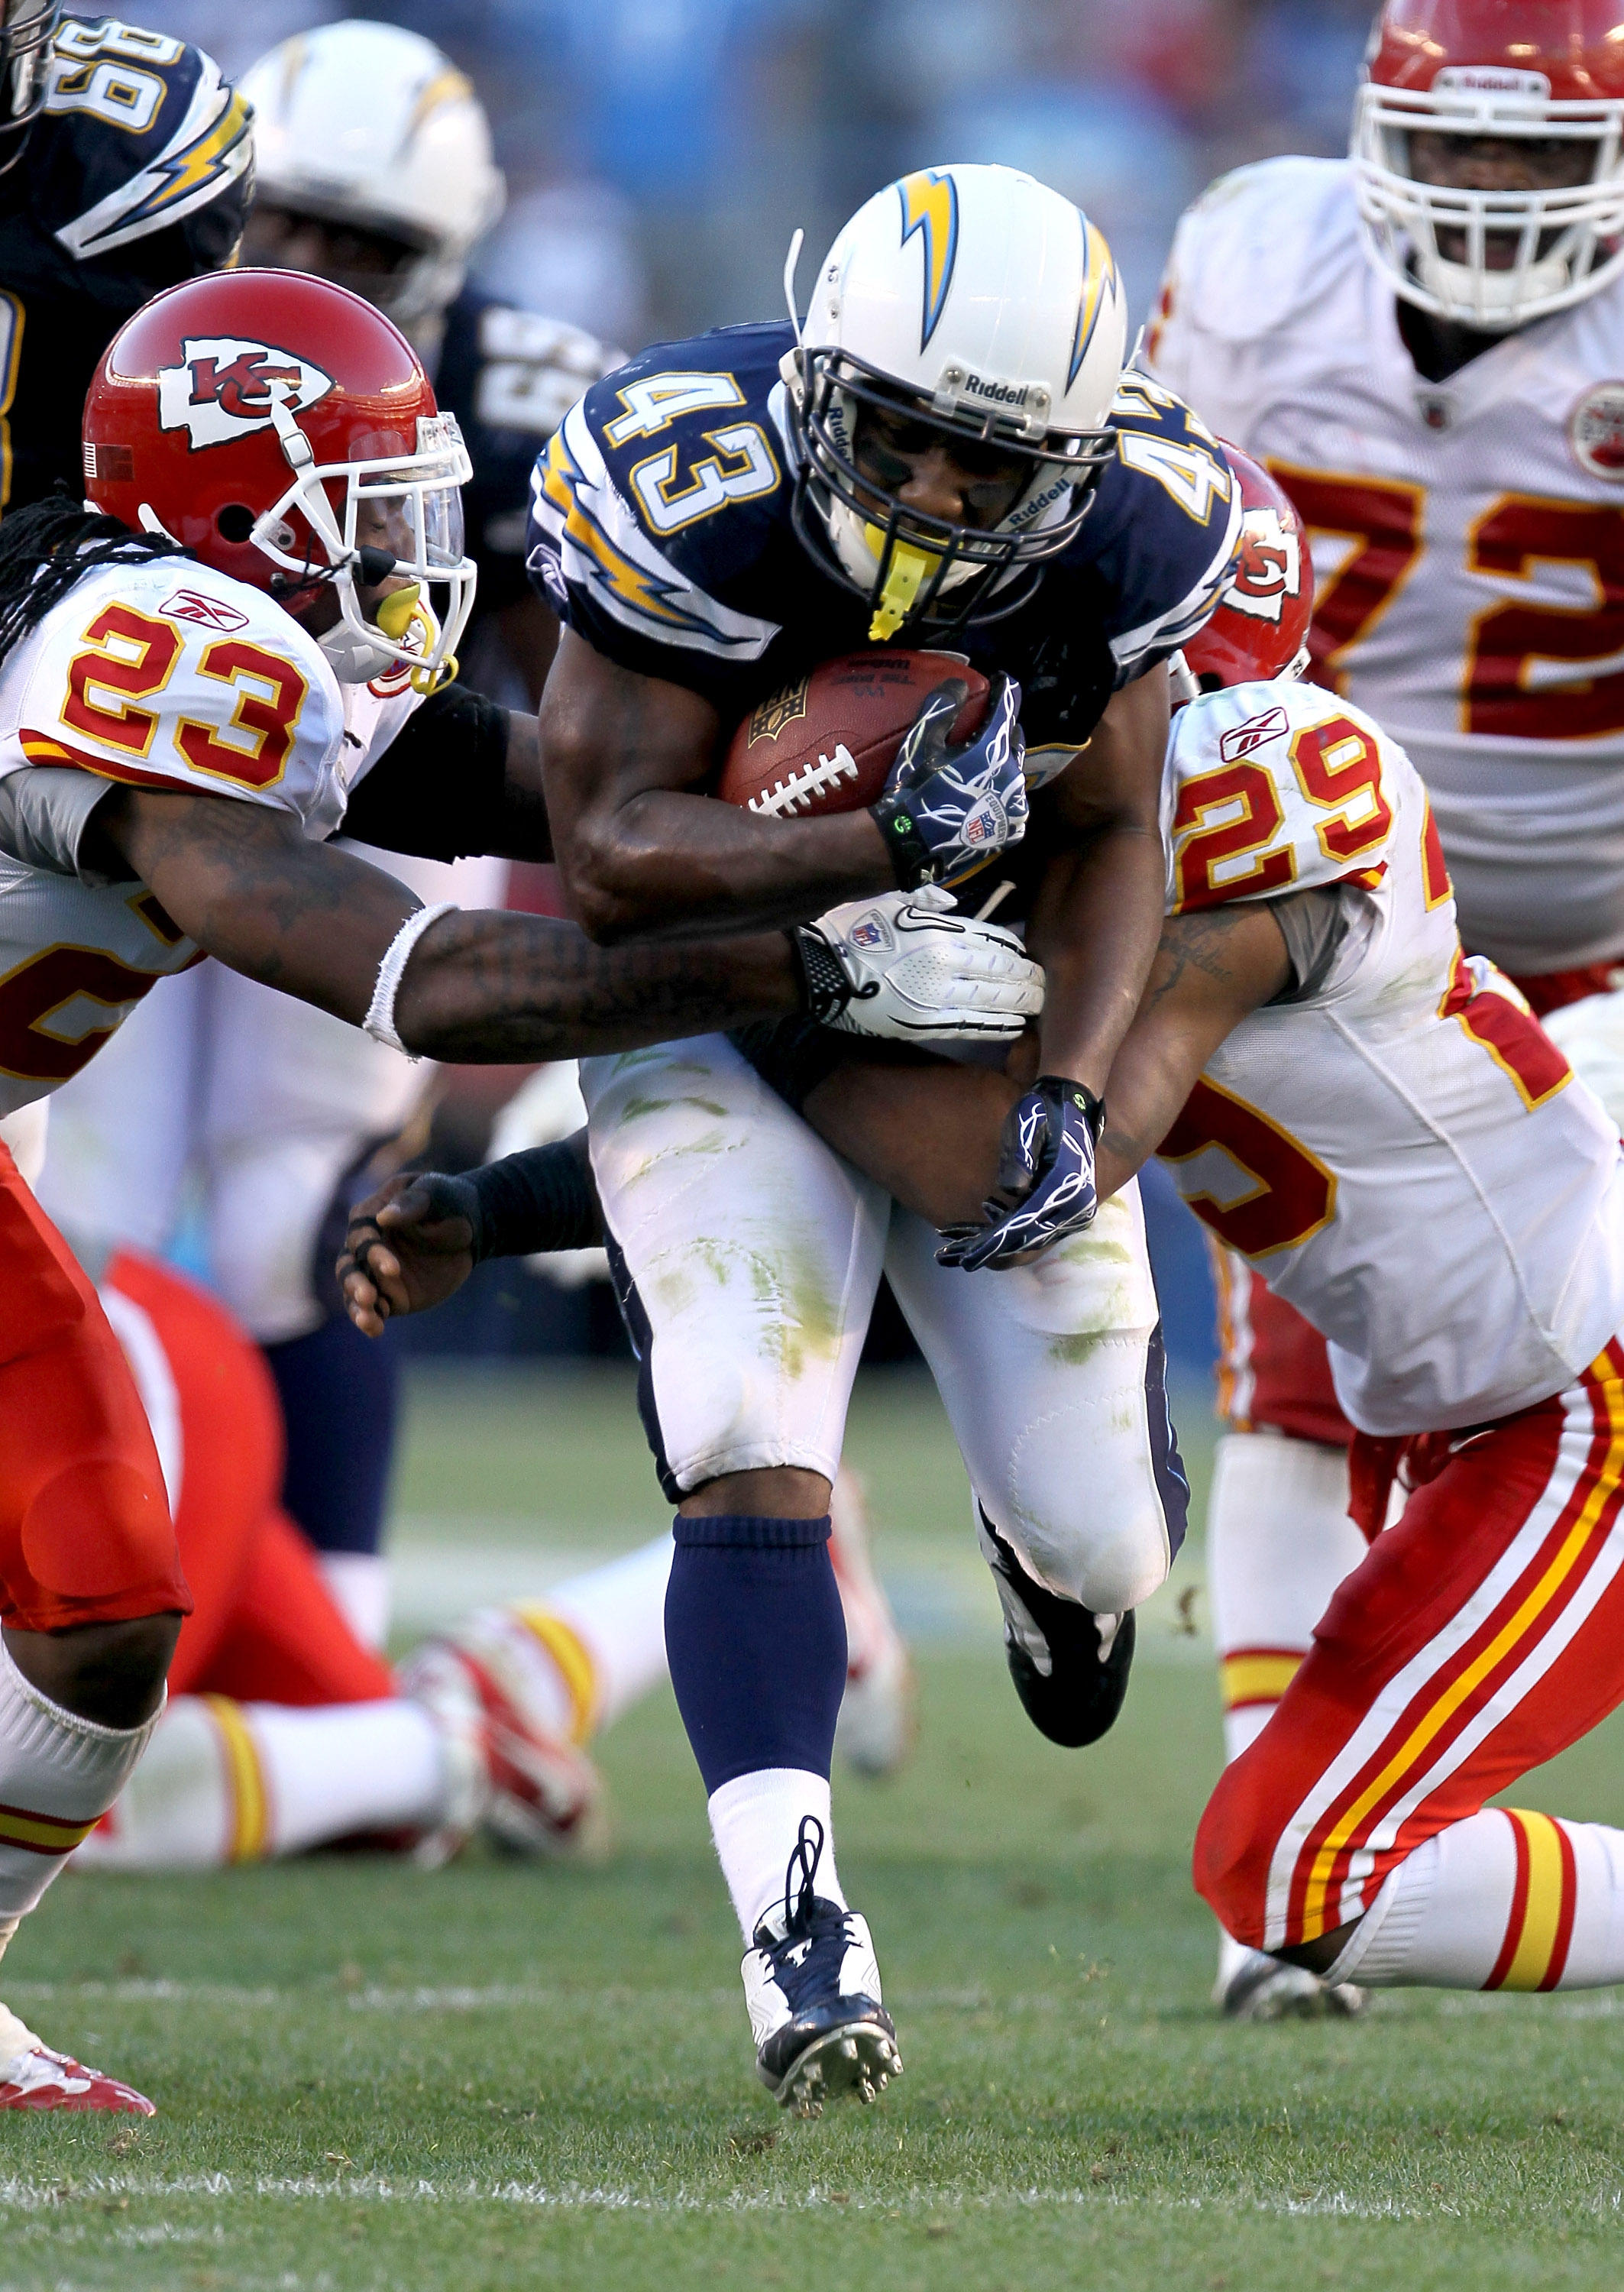 SAN DIEGO - DECEMBER 12: Running back Darren Sproles #43 of the San Diego Chargers carries the ball against safeties Eric Berry #29 and Kendrick Lewis #23 of the Kansas City Chiefs at Qualcomm Stadium on December 12, 2010 in San Diego, California.  the Ch